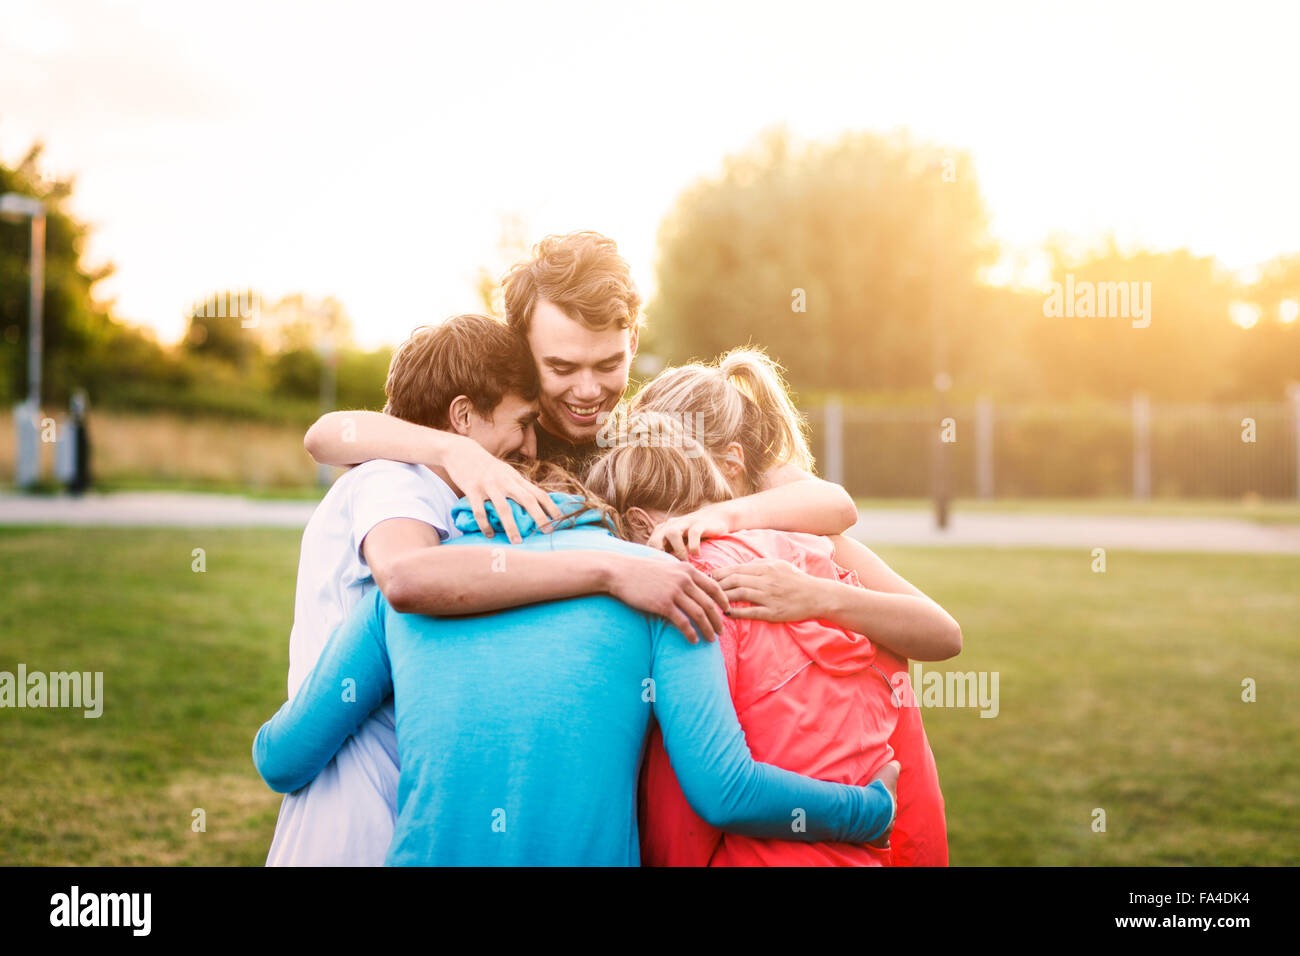 Male and female friends forming huddle at park during sunset - Stock Image